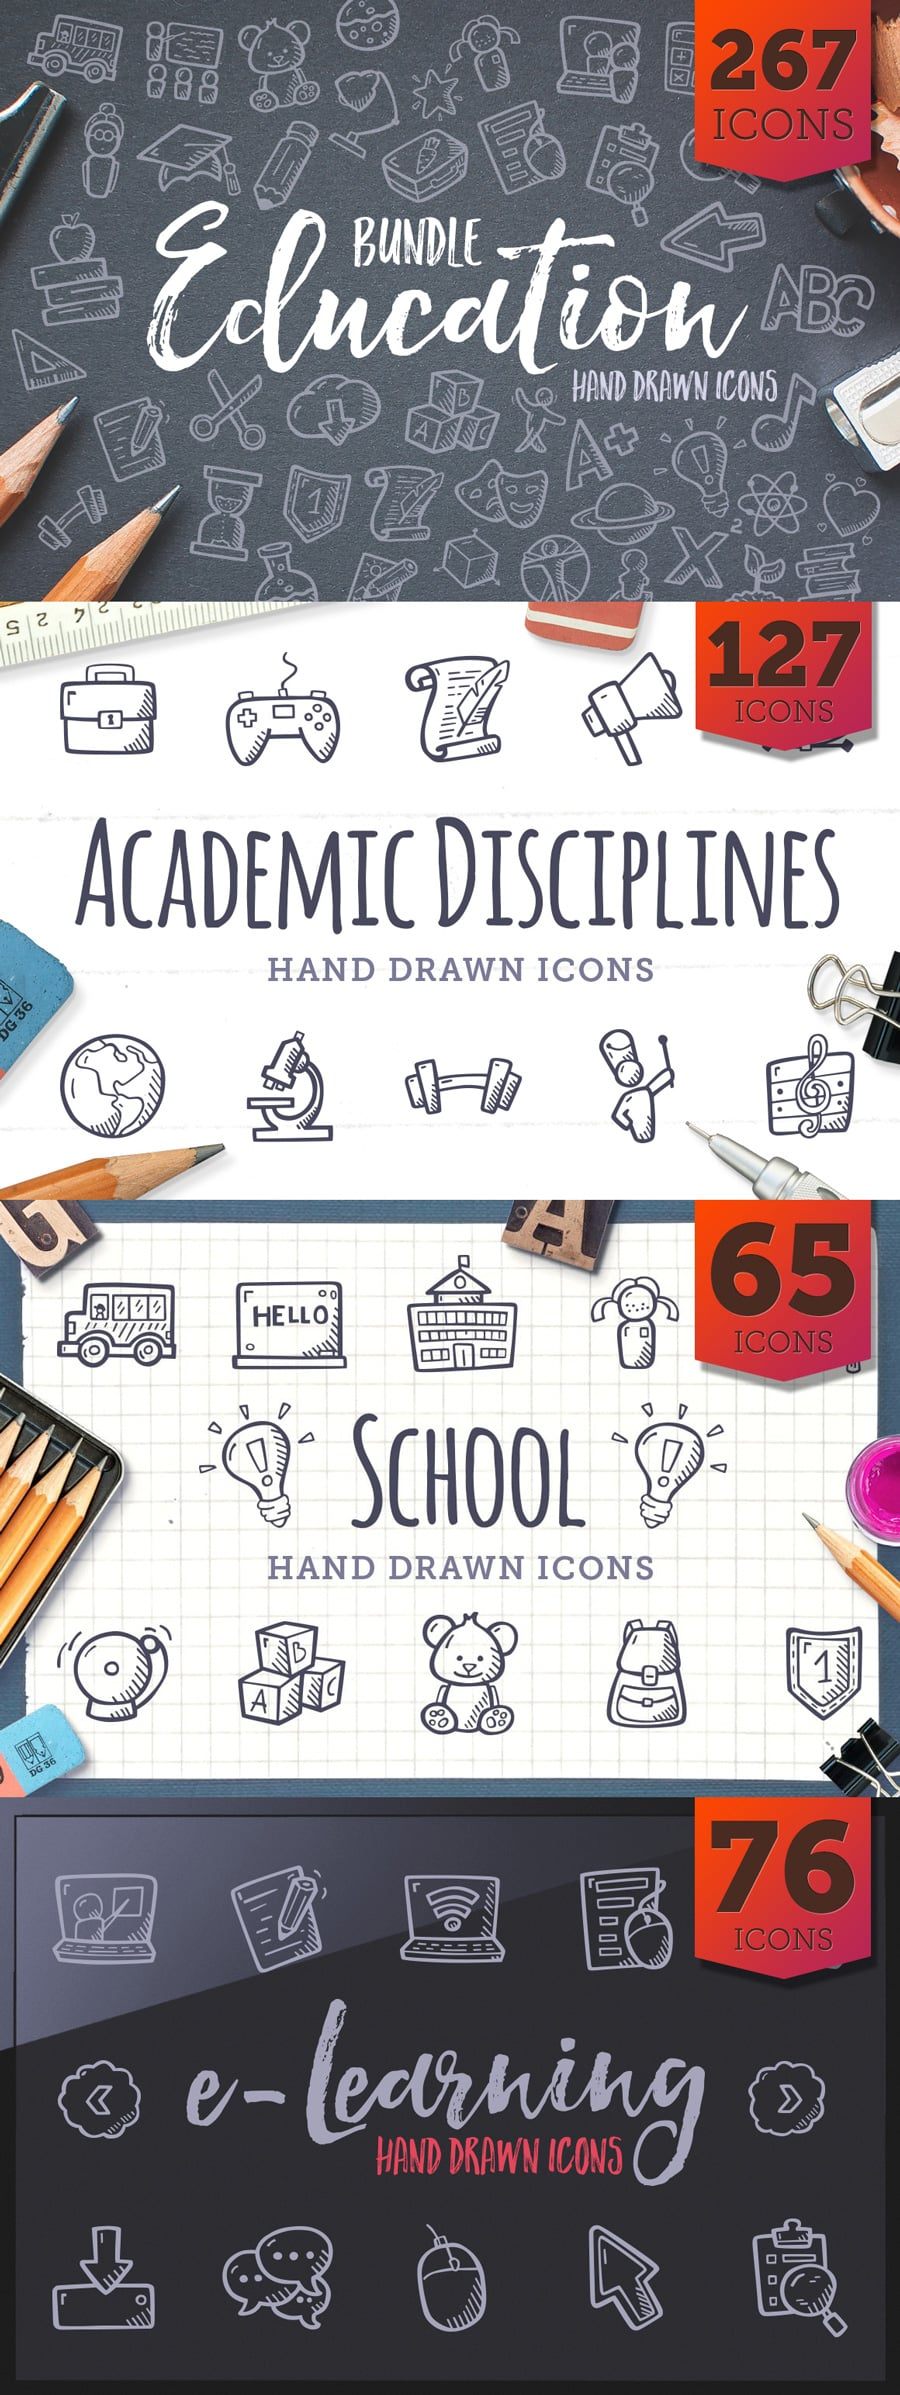 Education Bundle Icons - Hand Drawn Icons